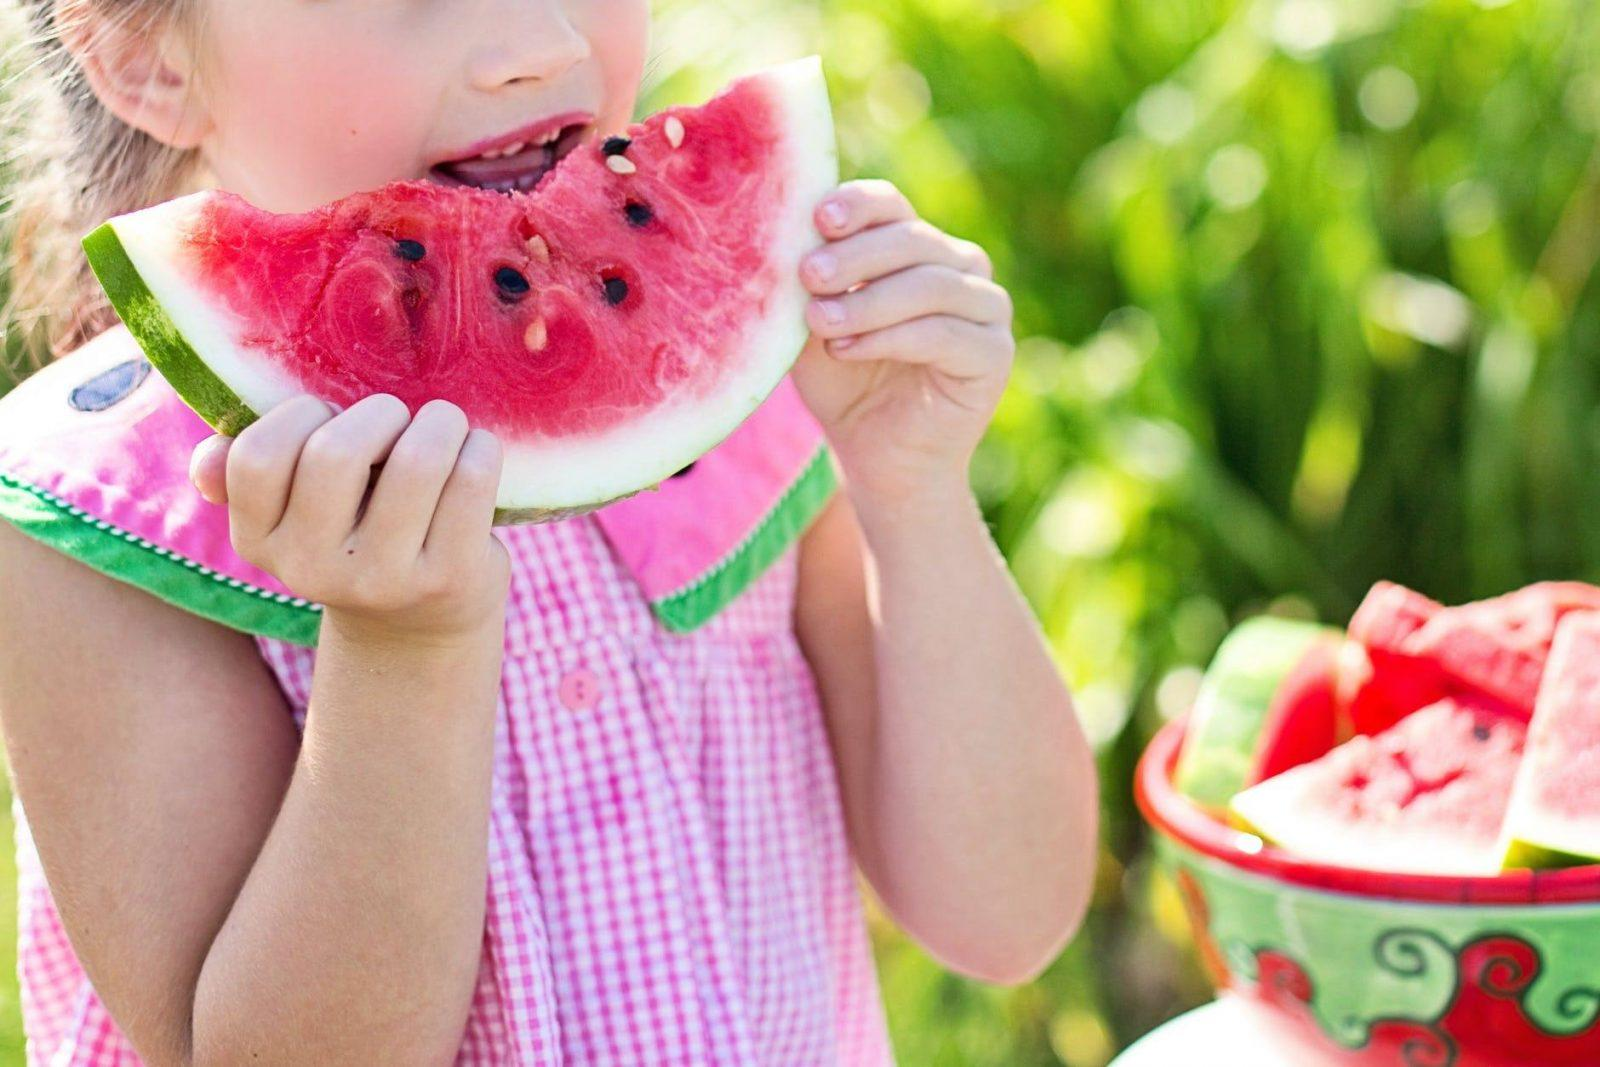 Child Eating A Watermelon